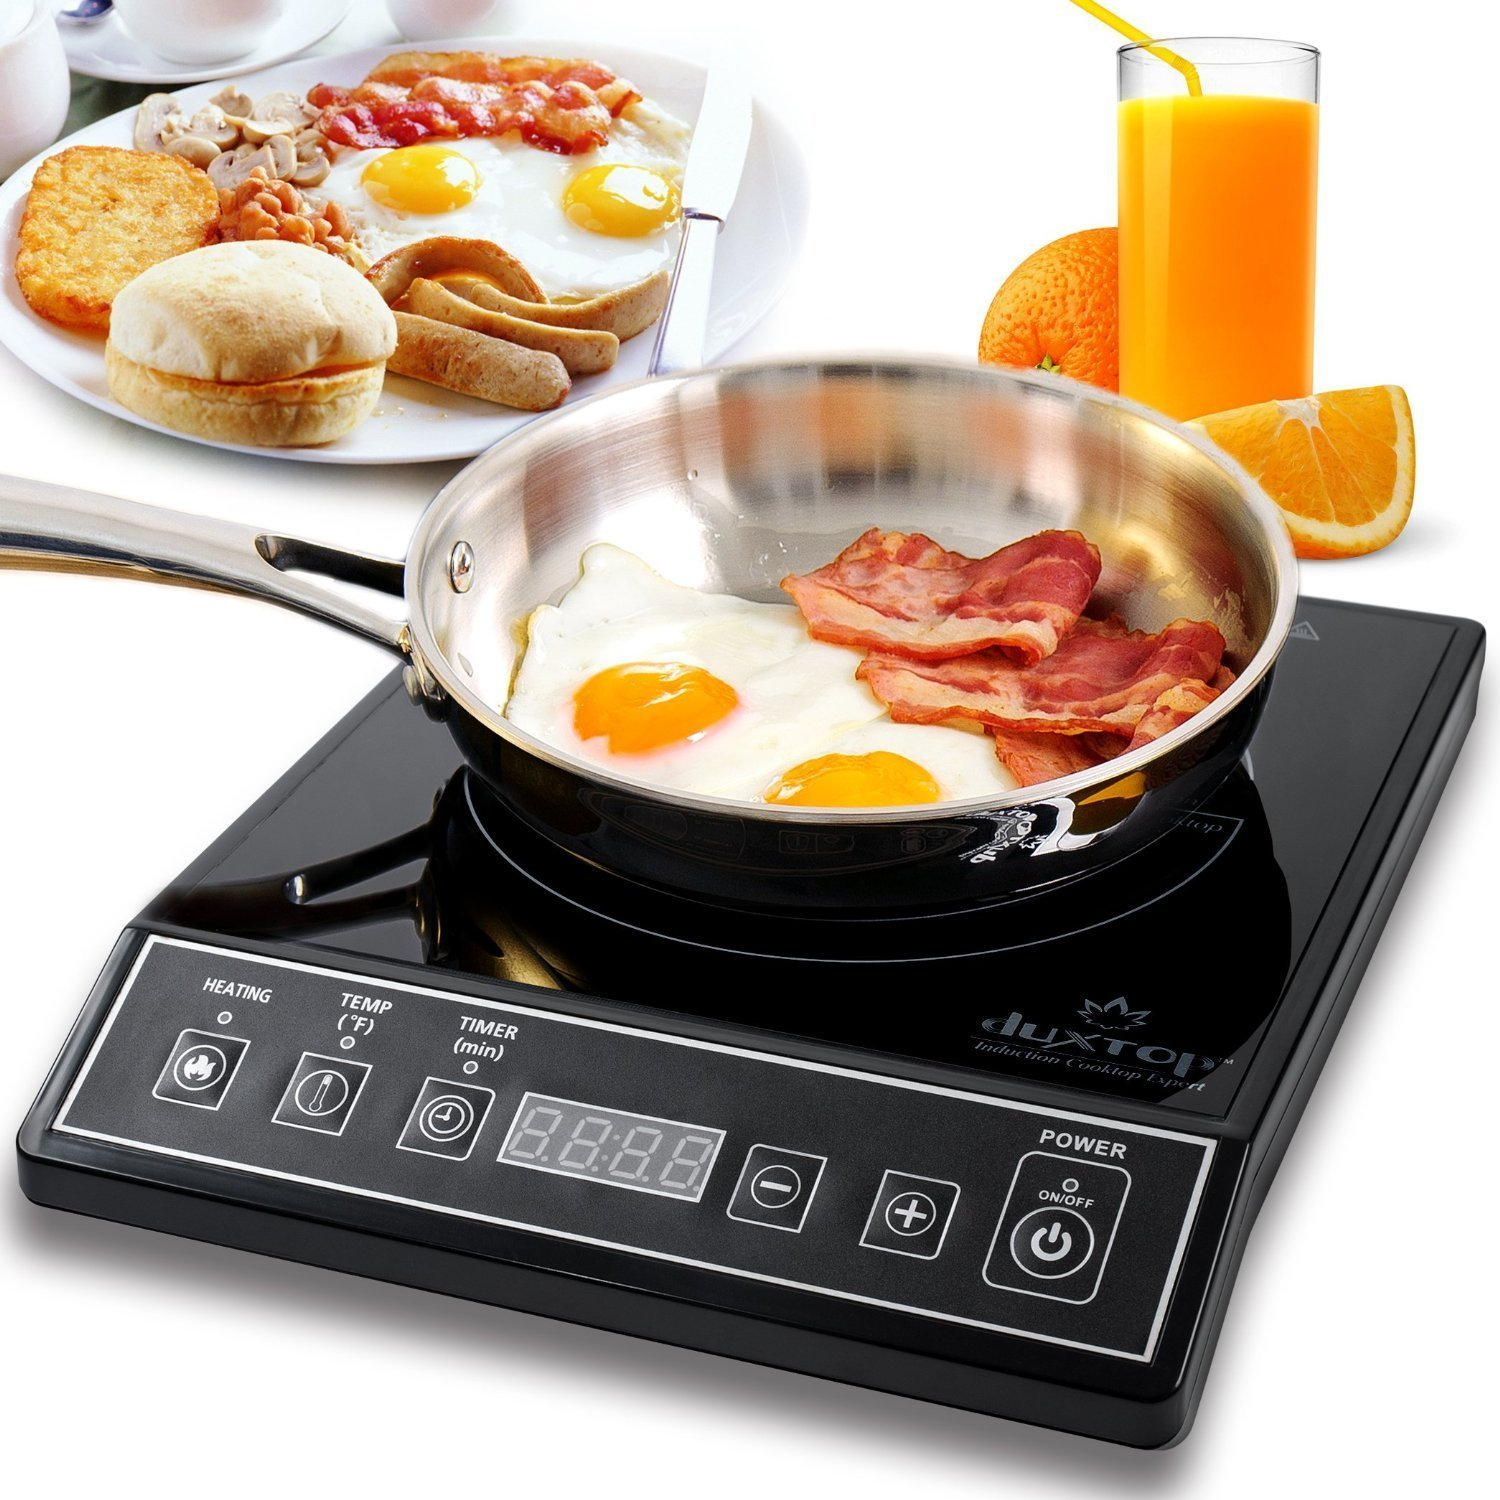 Secura 9100MC 1800 Watt Portable Induction Cooktop Review